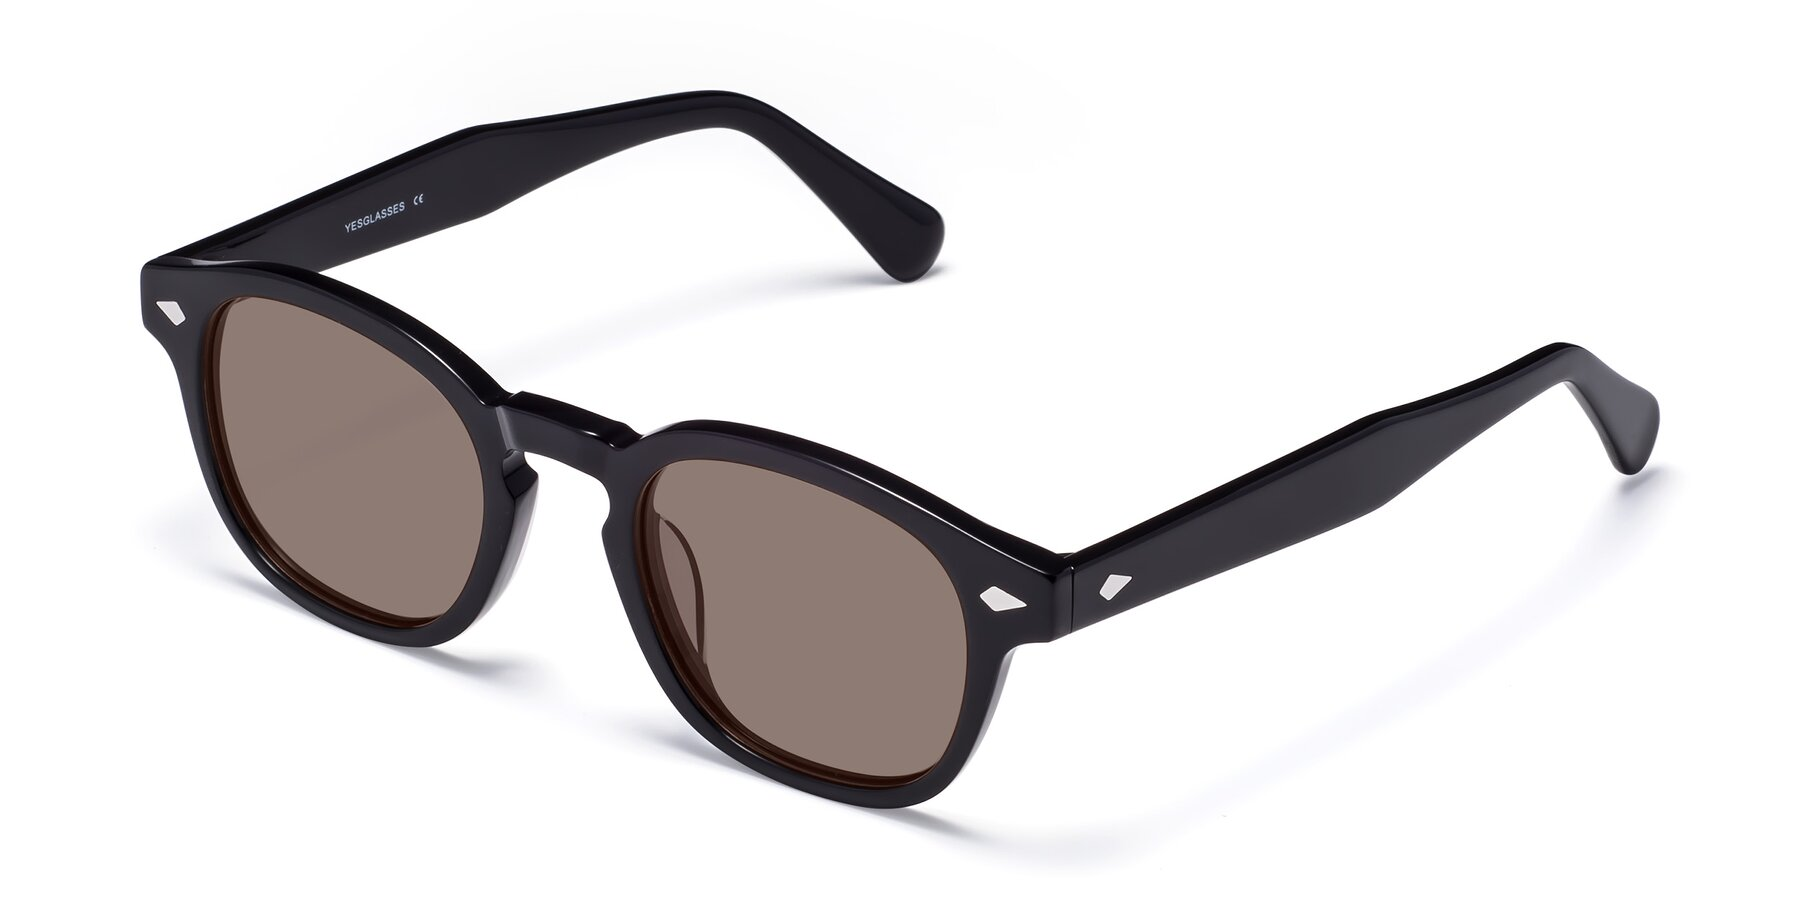 Angle of WALL-E in Black with Medium Brown Tinted Lenses